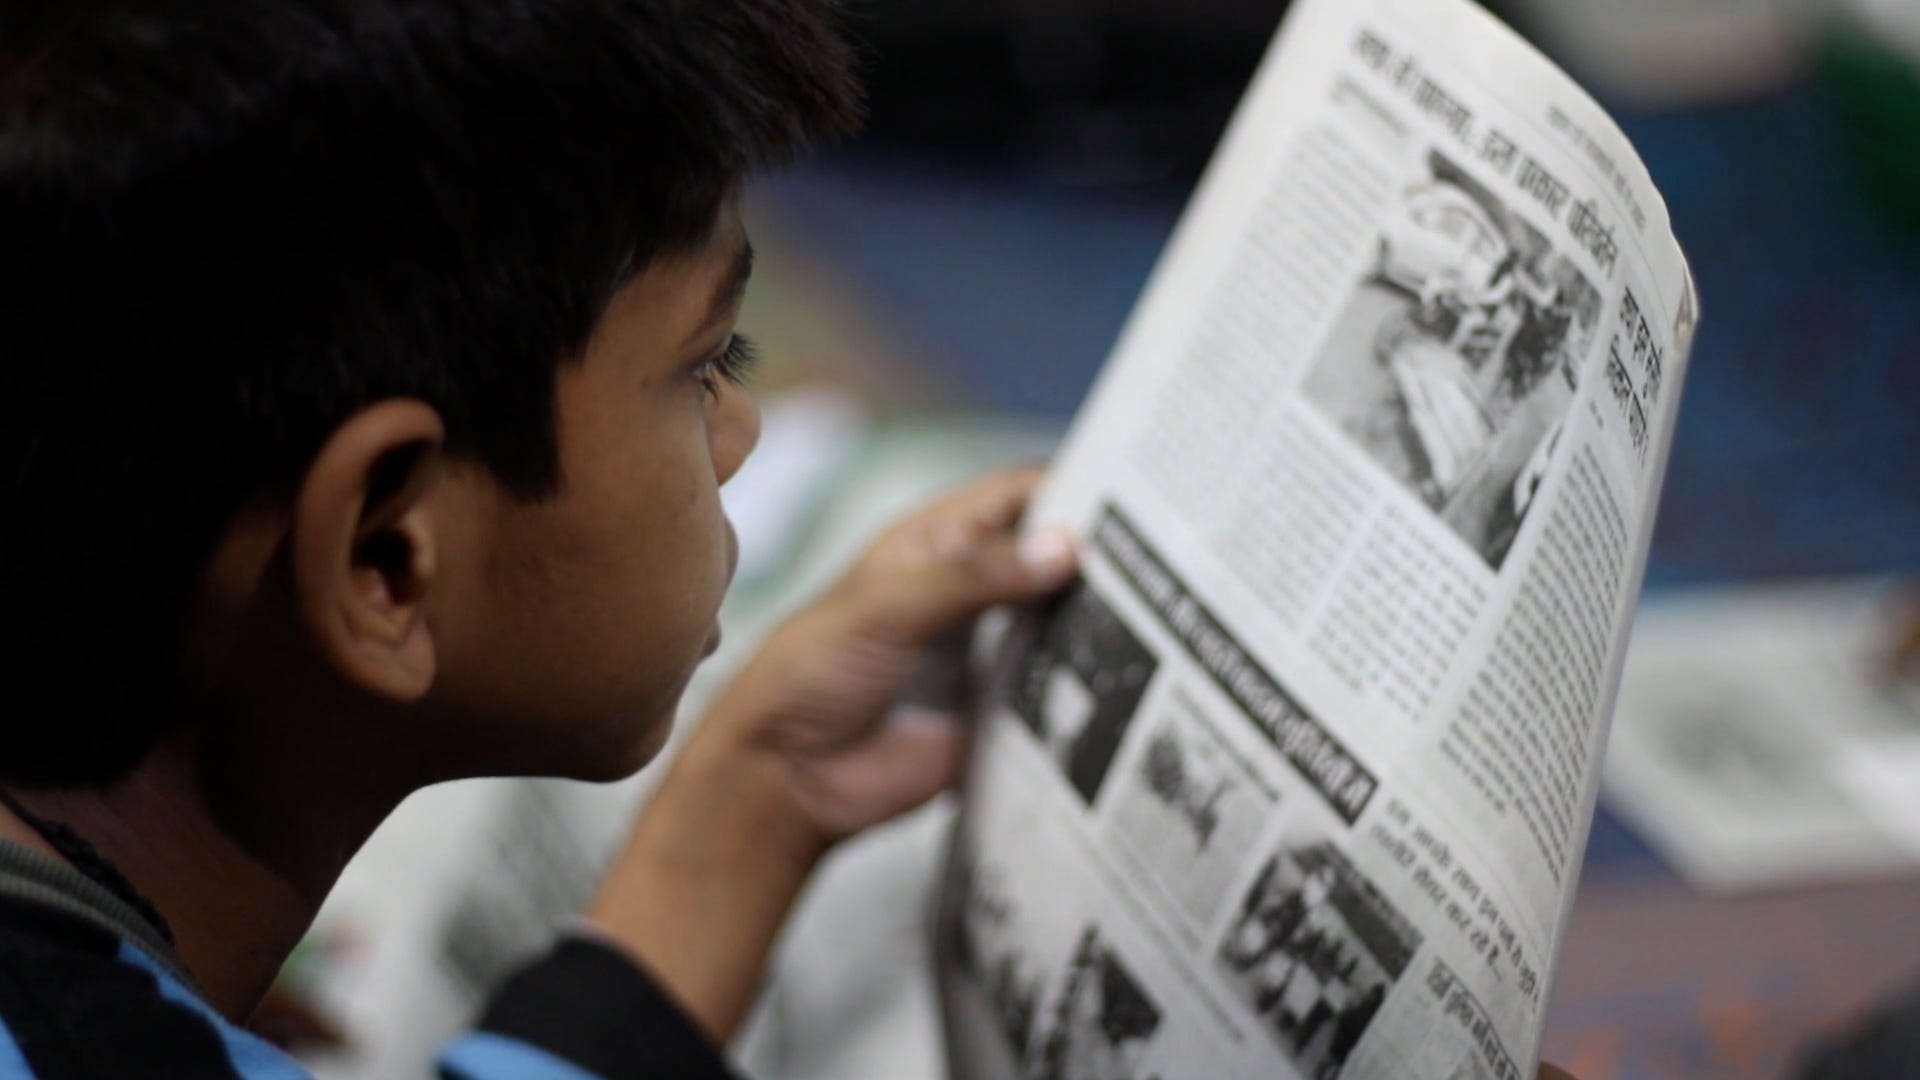 Children S Newspaper In India Pays Underprivileged Kids To Report On Covid Business Insider